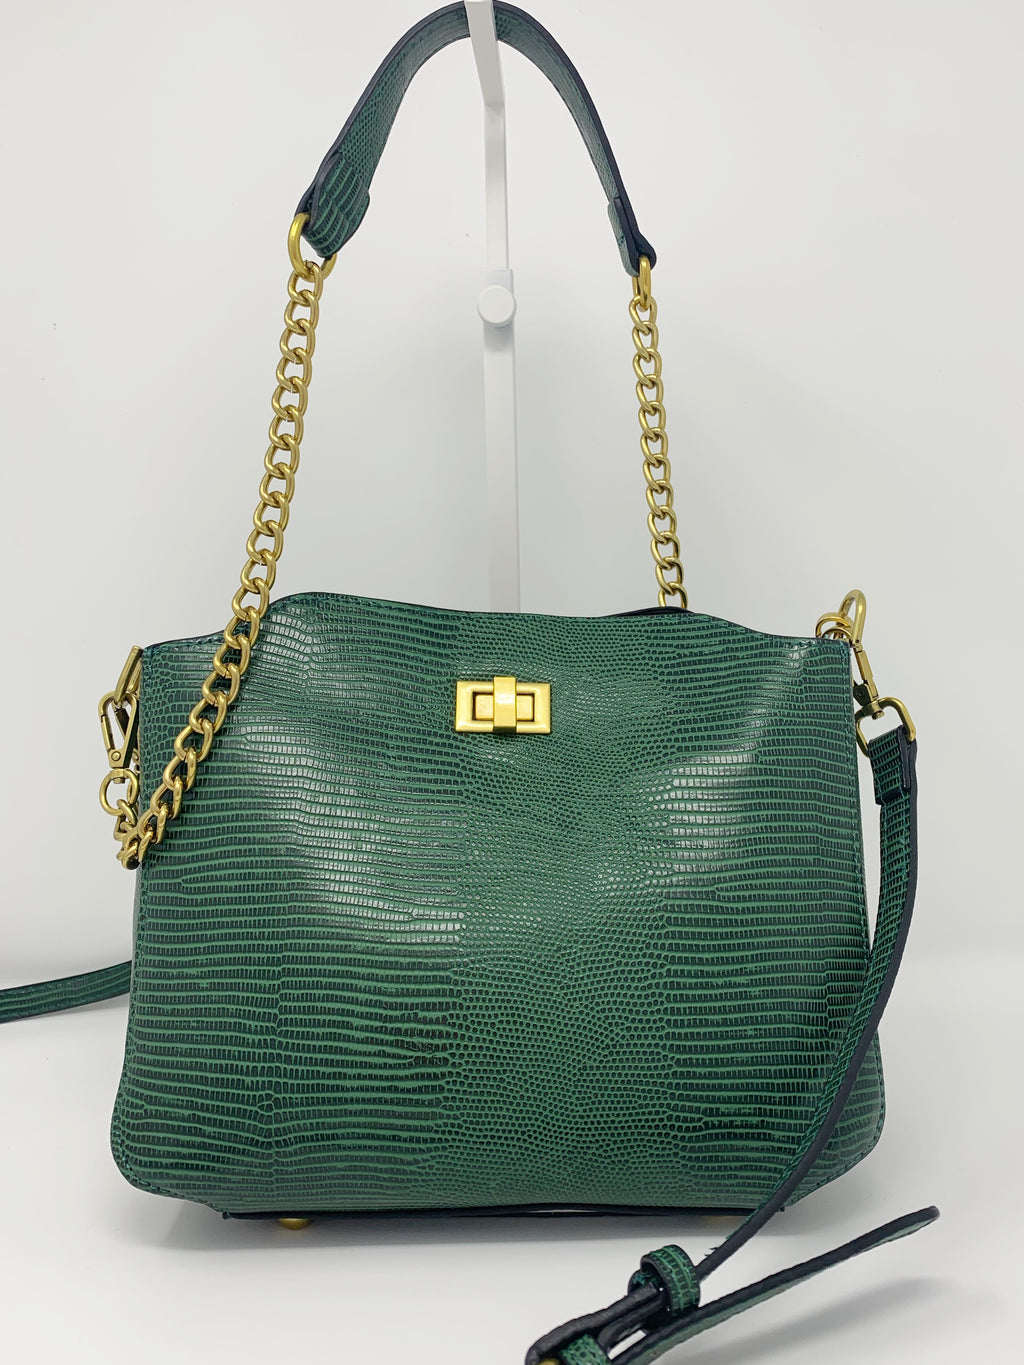 Reptile Embossed Bucket Bag with Chain and Crossbody Strap in Emerald Green